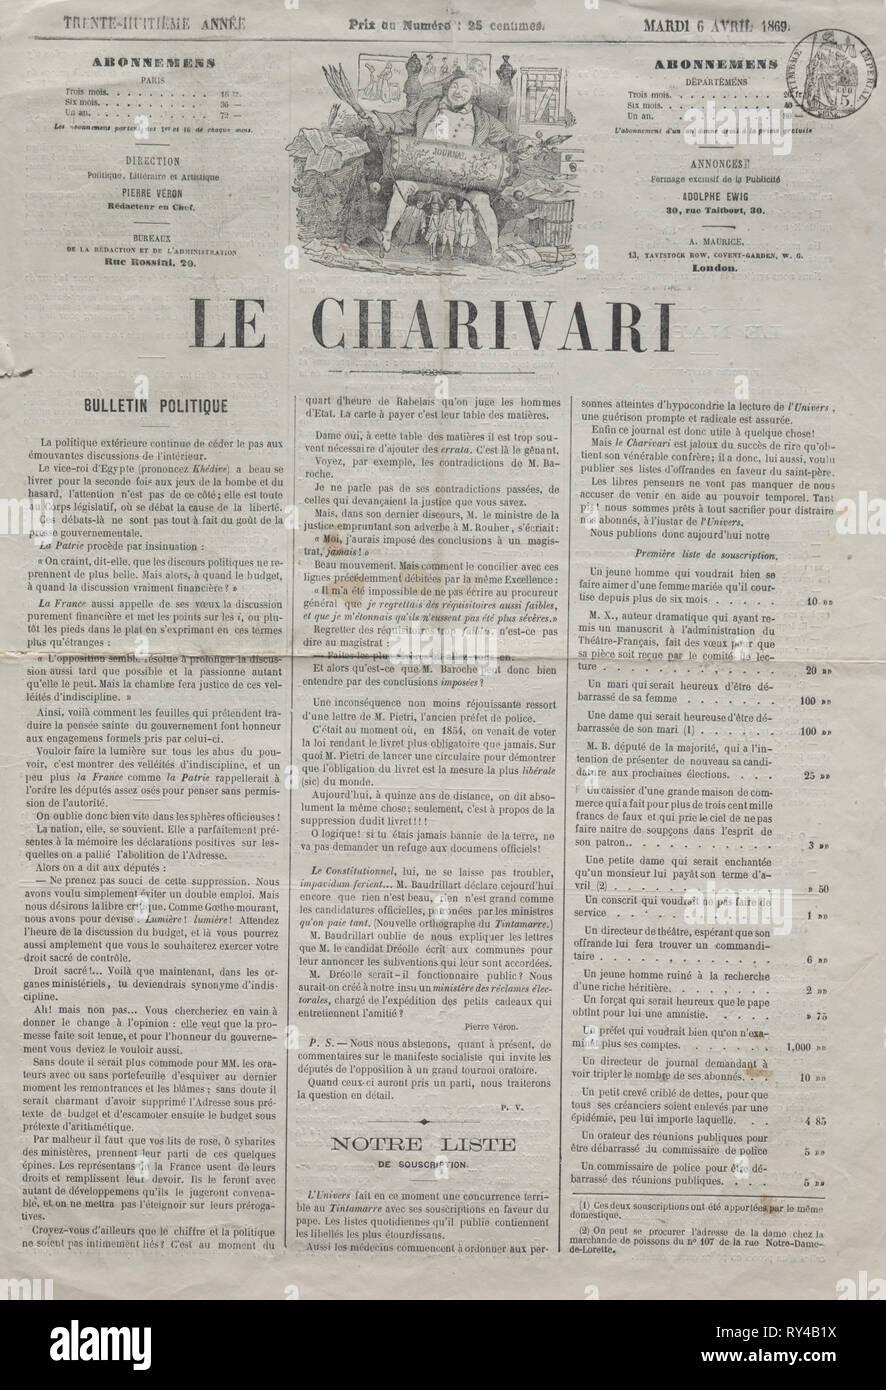 Published in le Charivari (6 April 1869): Actualities (No. 64): Difficulties in becoming svelte, 1869. Honoré Daumier (French, 1808-1879). Lithograph; sheet: 44 x 61 cm (17 5/16 x 24 in.); image: 23.8 x 20.3 cm (9 3/8 x 8 in - Stock Image